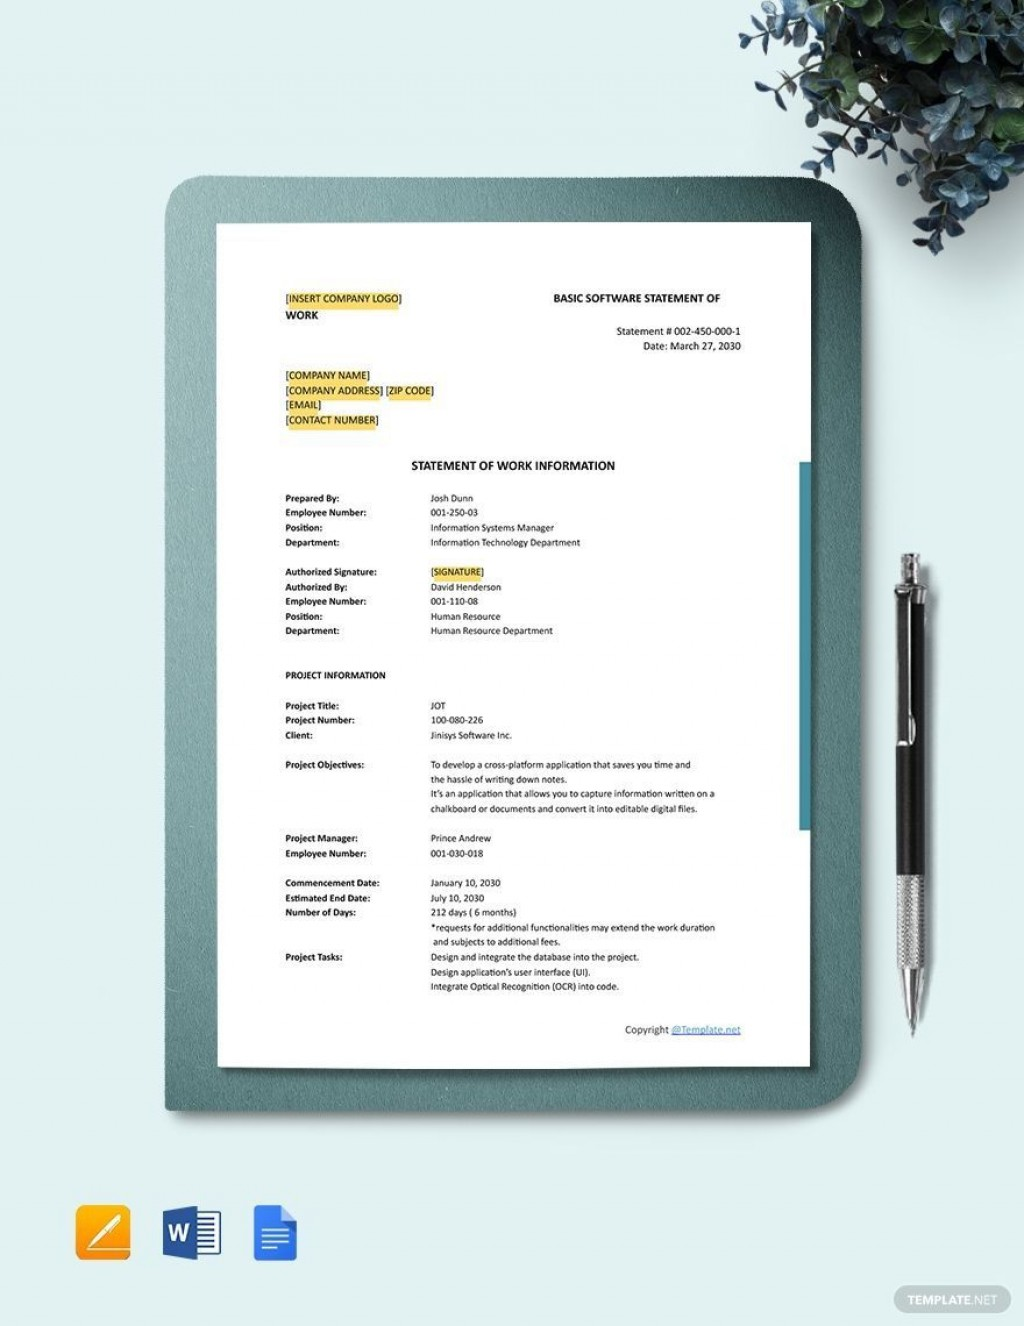 000 Rare Project Statement Of Work Template Doc Design Large